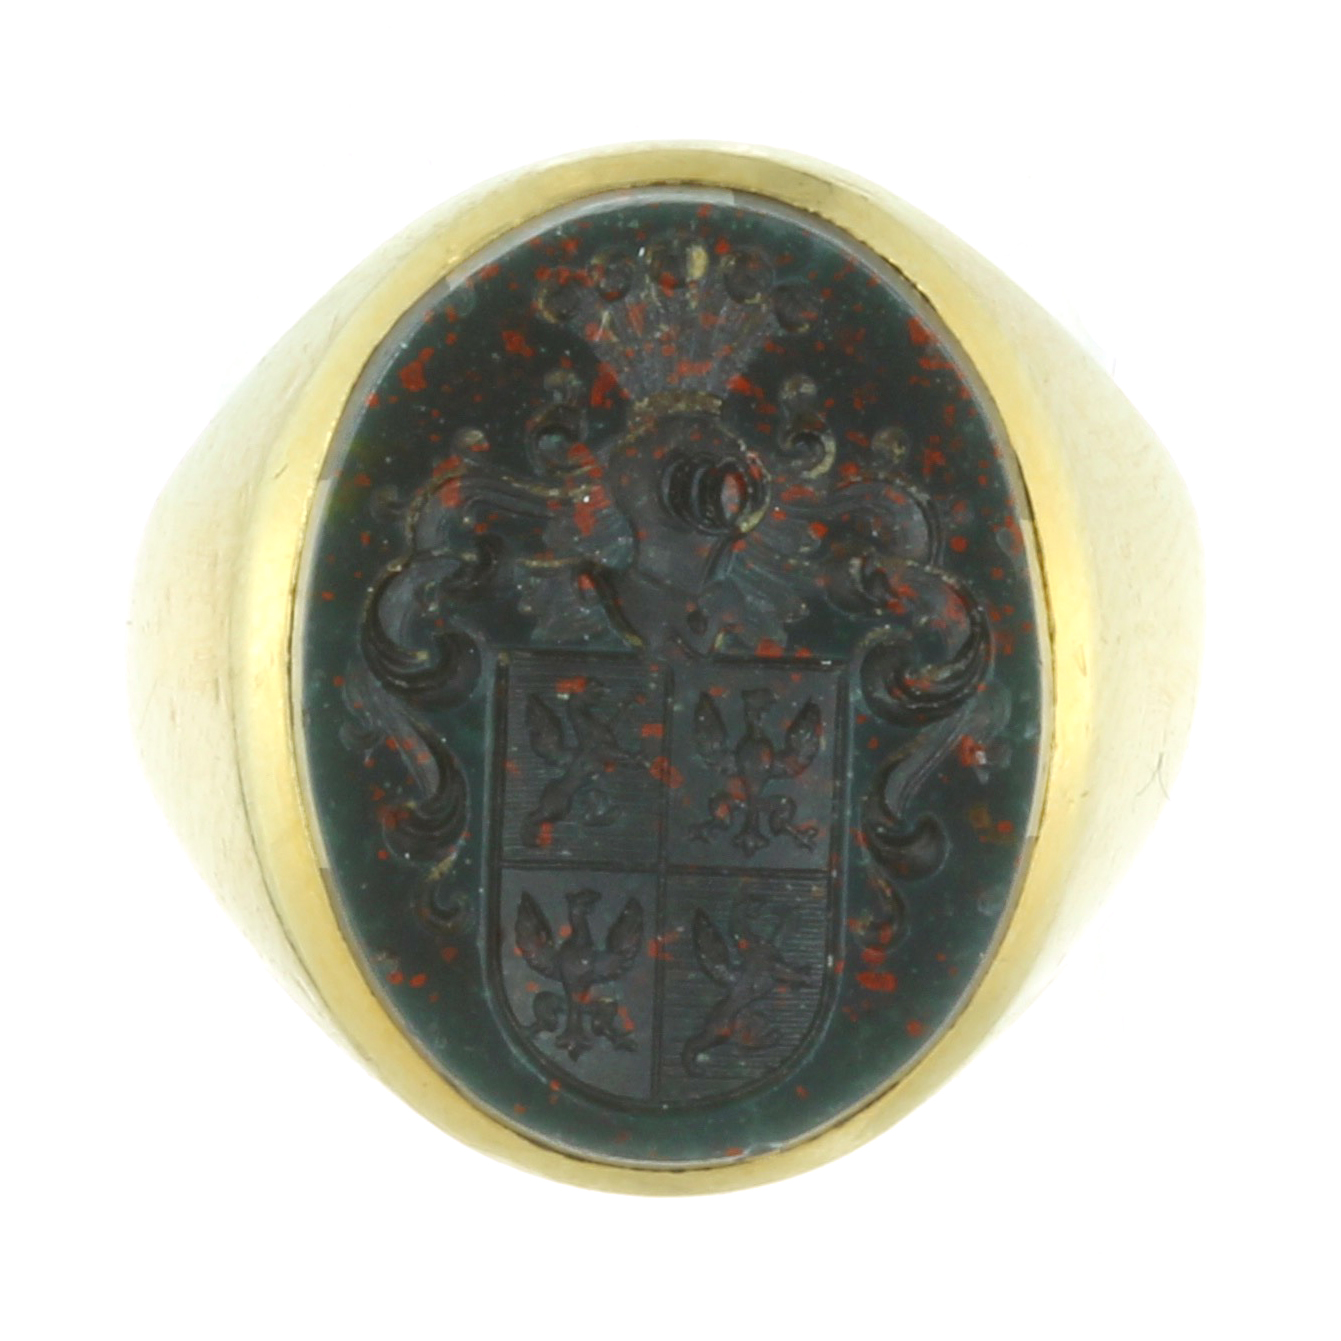 Los 36C - AN ANTIQUE BLOODSTONE INTAGLIO SEAL / SIGNET RING in 18ct yellow gold set with an oval piece of